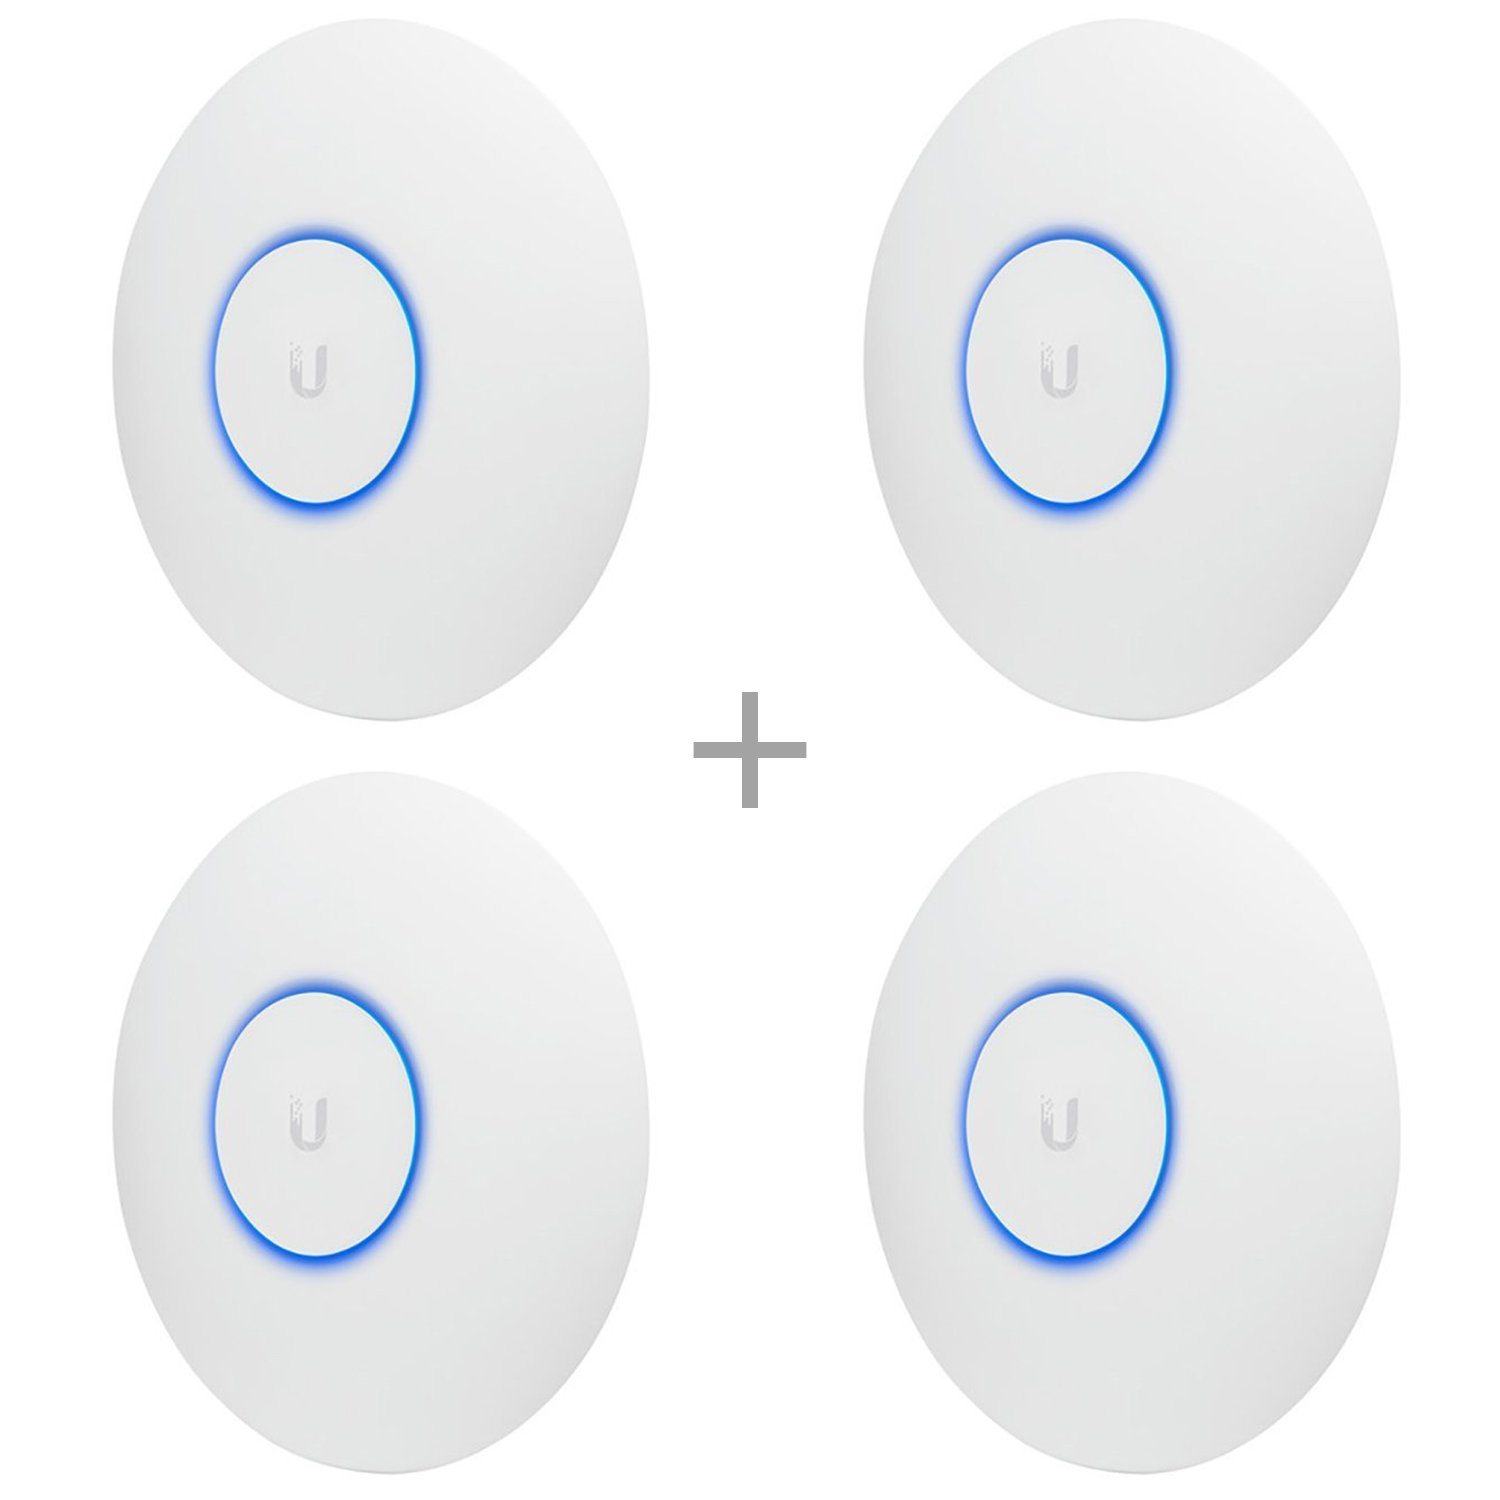 Ubiquiti Networks UAP-AC-PRO-E Access Point (No PoE Included In Box) 4-Pack Bundle